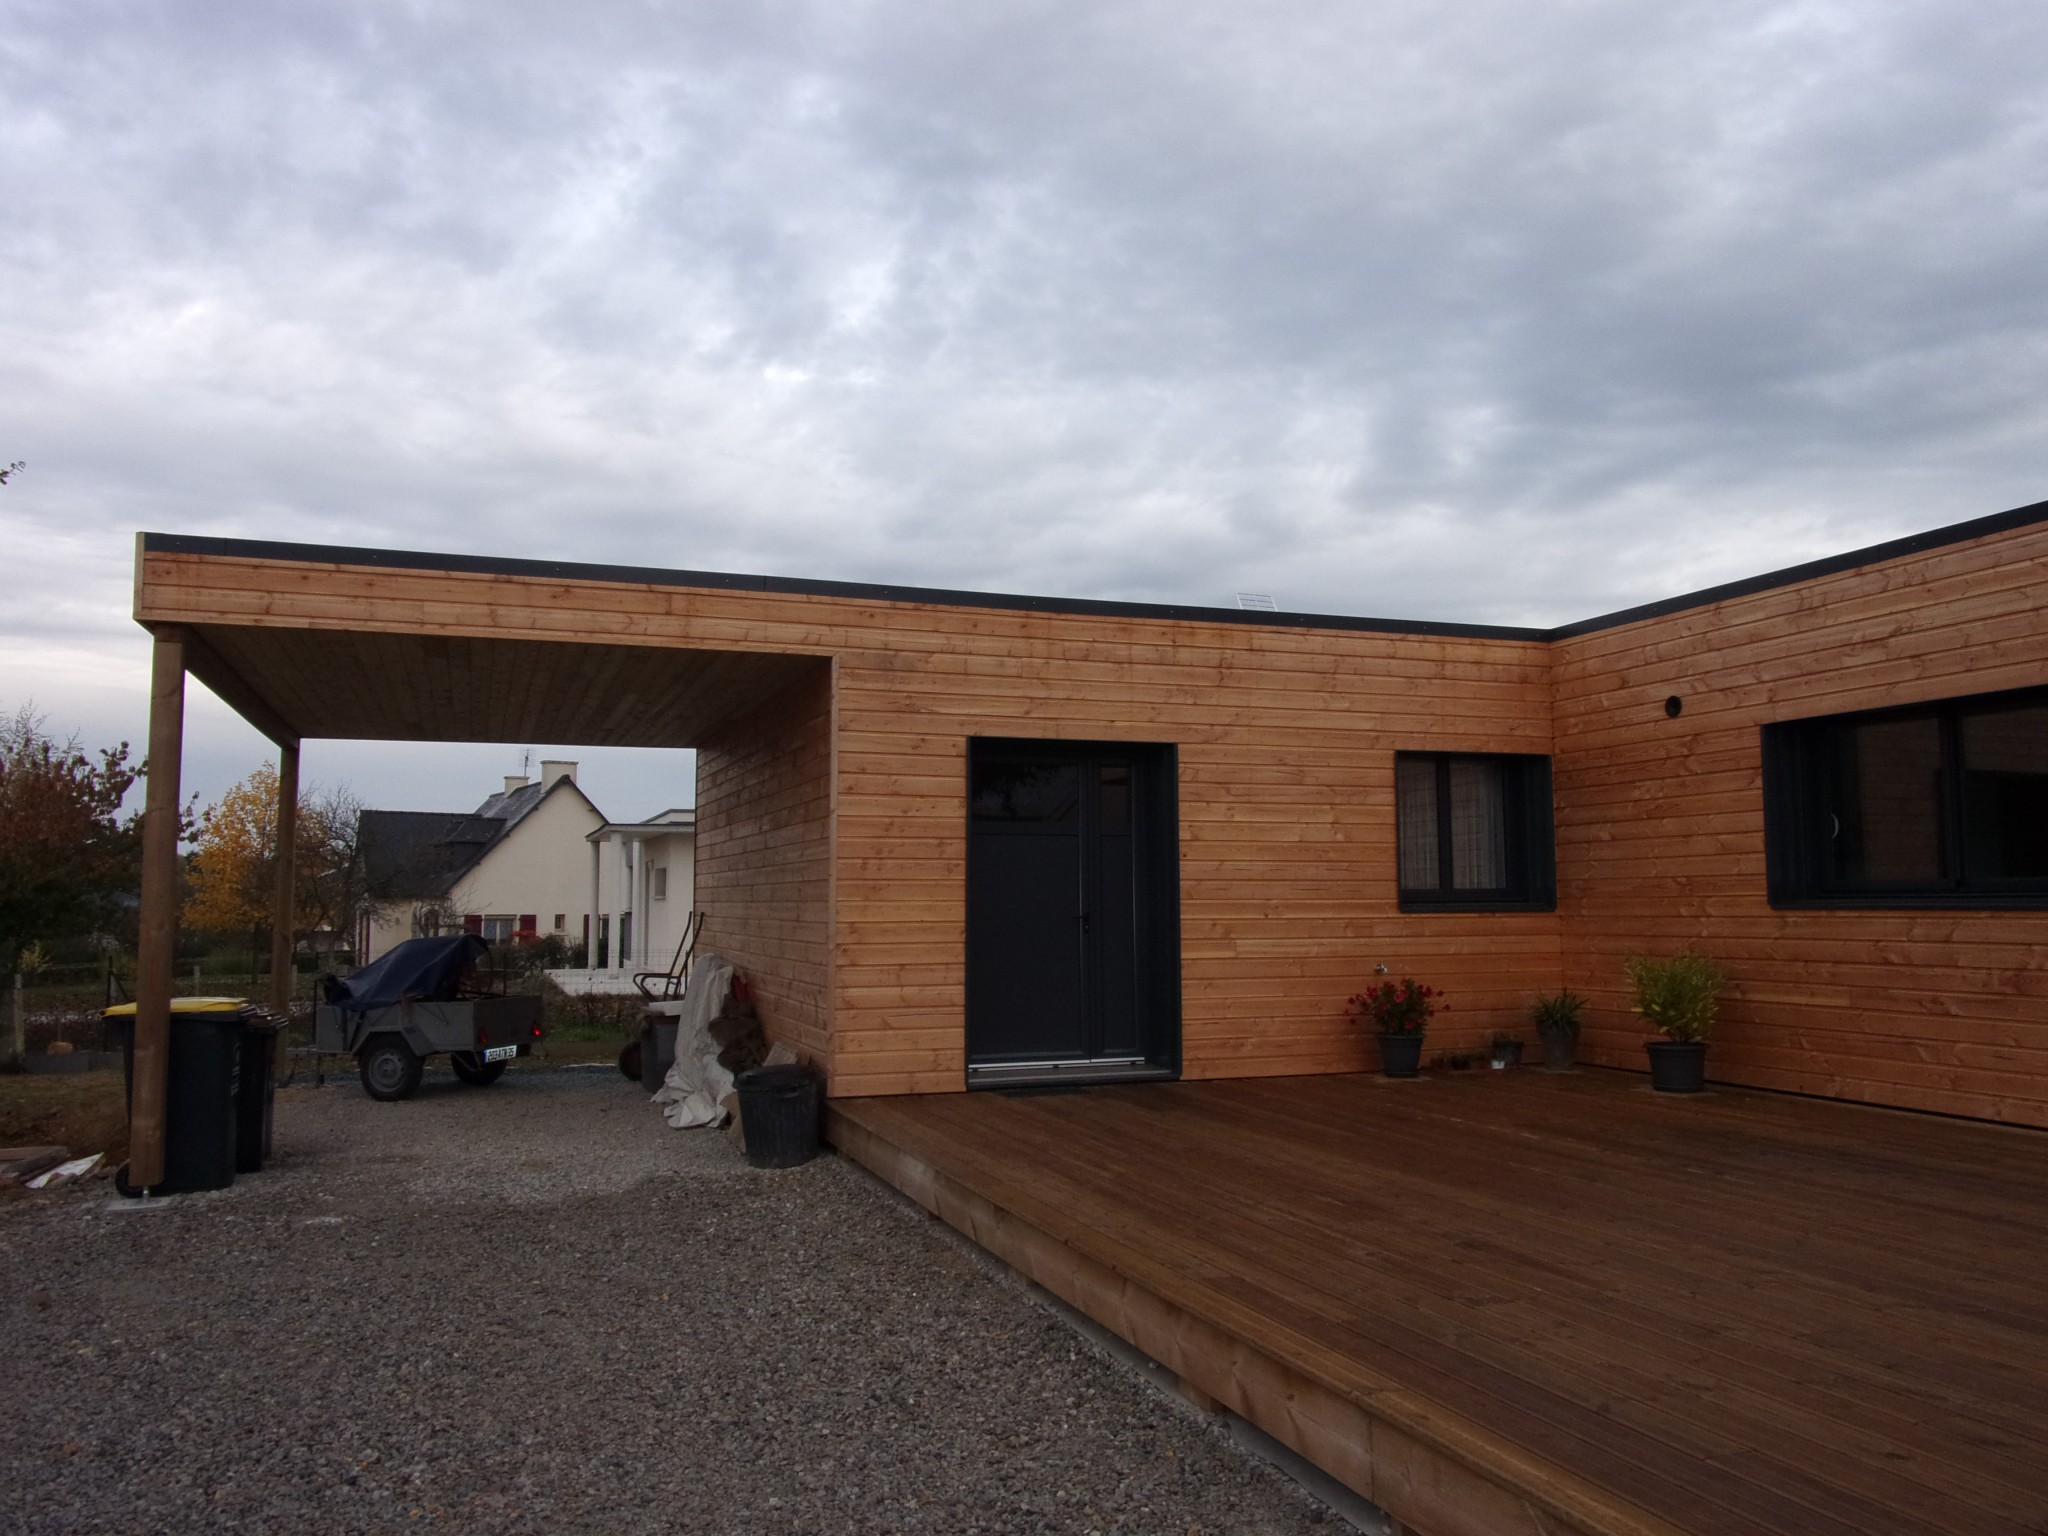 Maison 126 m en bretagne popup house for Pliage maison pop up